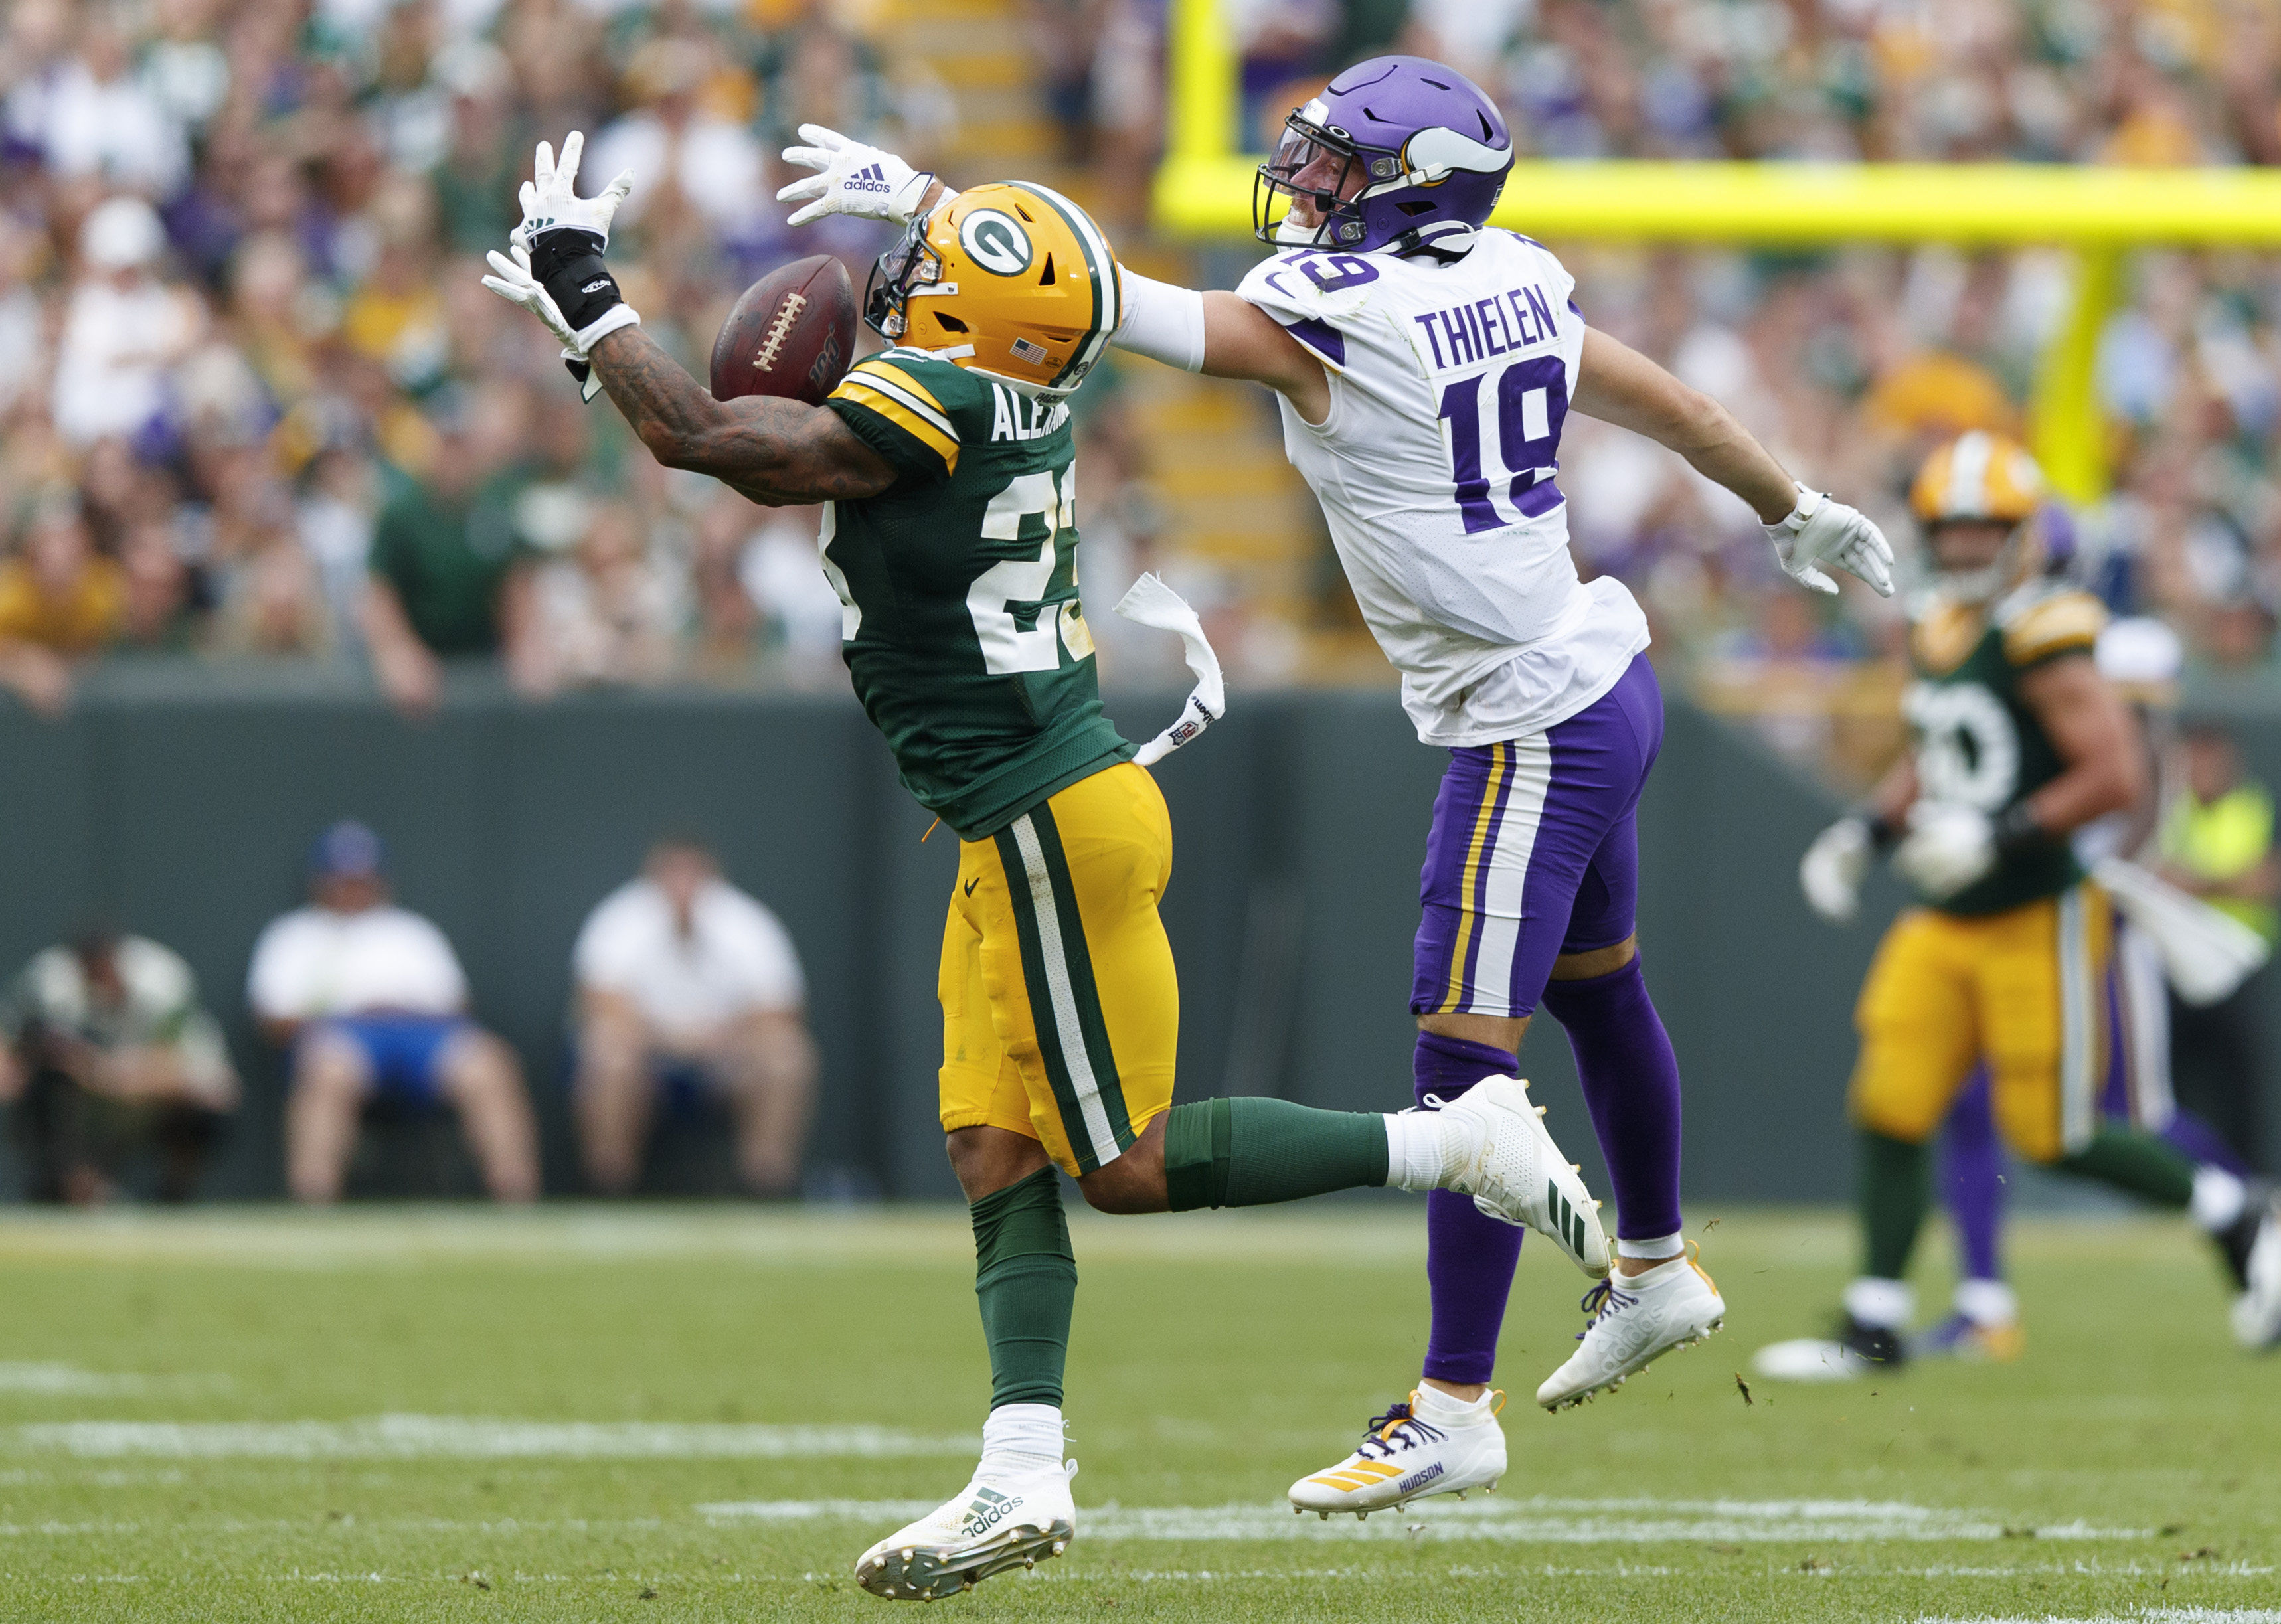 Six Key Factors That Will Determine the Winner of Packers vs Vikings